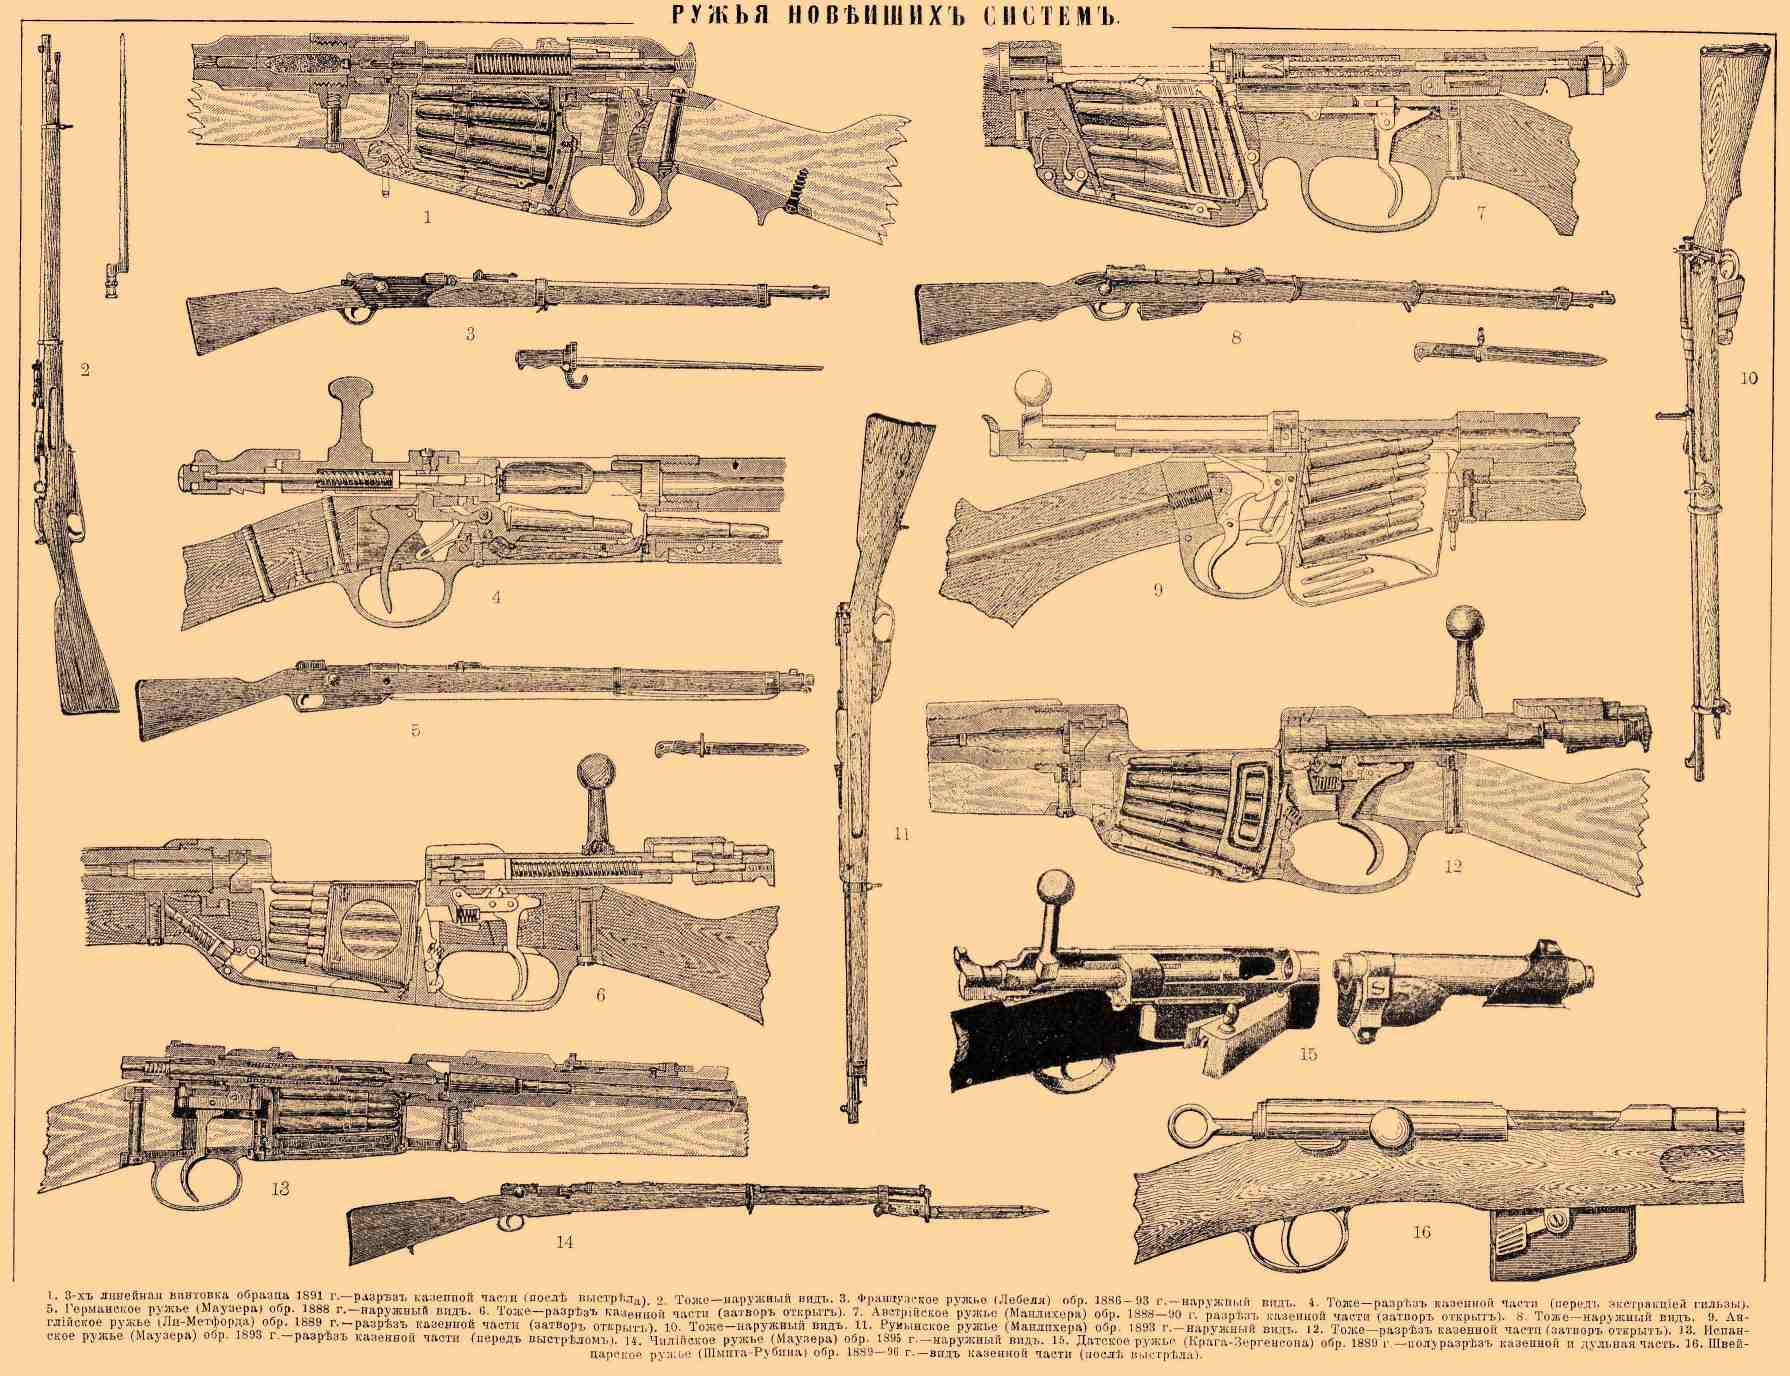 Mosinnagant This Diagram Http Enacademicru Pictures Enwiki 6 Ing01png Refinement And Production Schematic